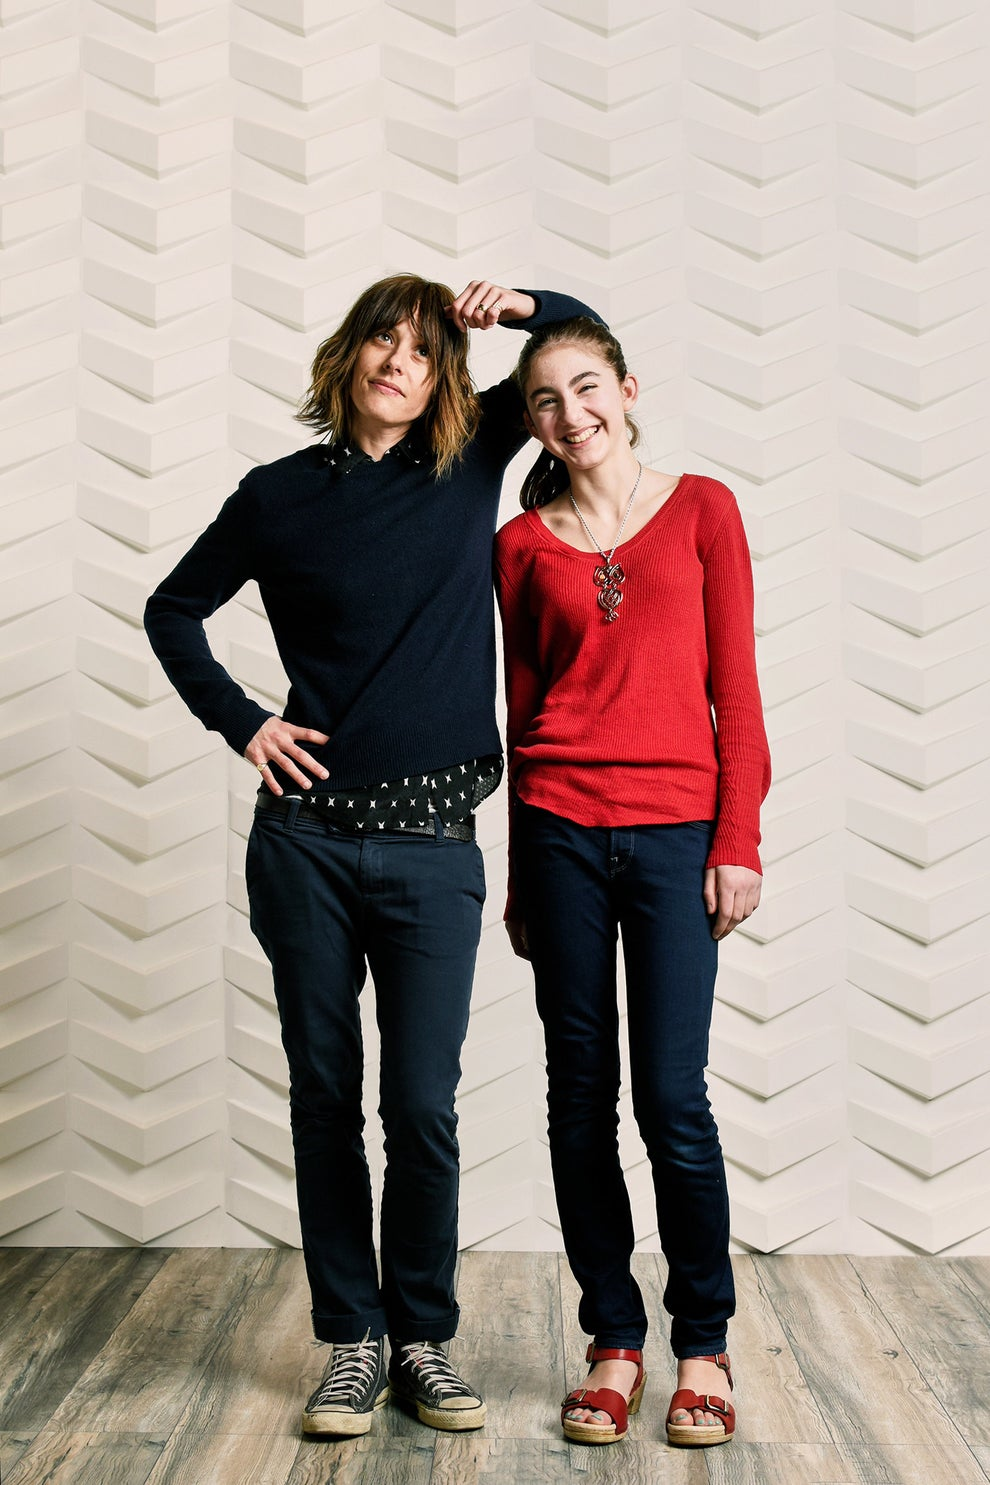 Lane 1974 stars Kate Moennig and Sophia Mitri Schloss